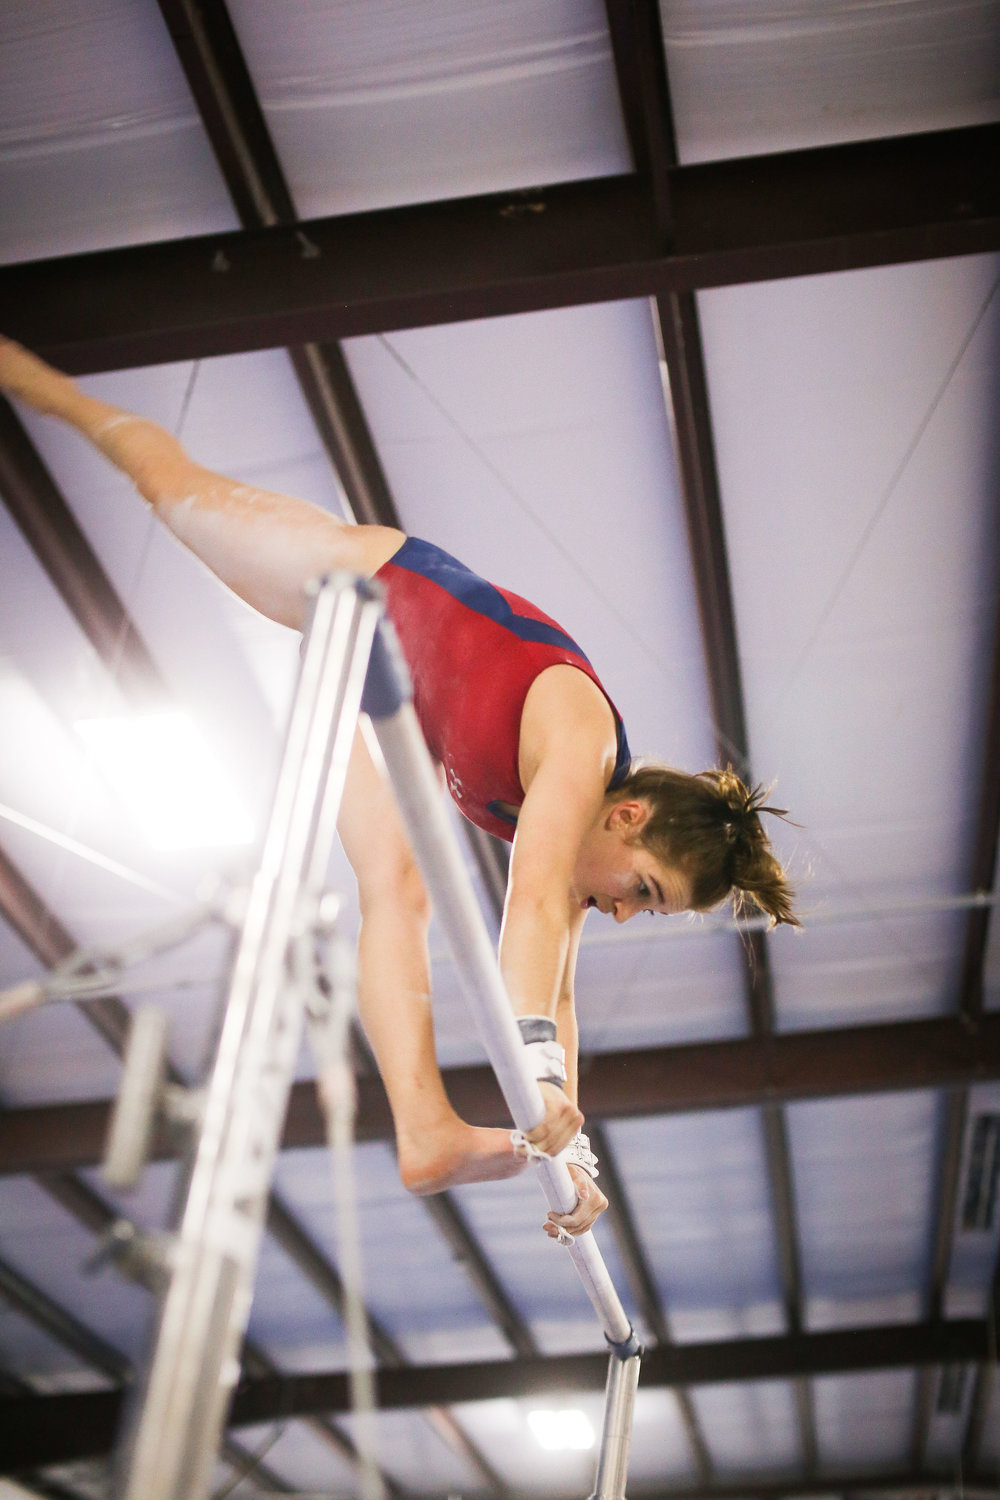 Competitive gymnastics - Some join gymnastics to develop coordination, strength, and confidence. Others join to become the next Olympic athlete or receive a college scholarship. Our goal is to develop each team member to the best of her individual ability.Learn more ➝